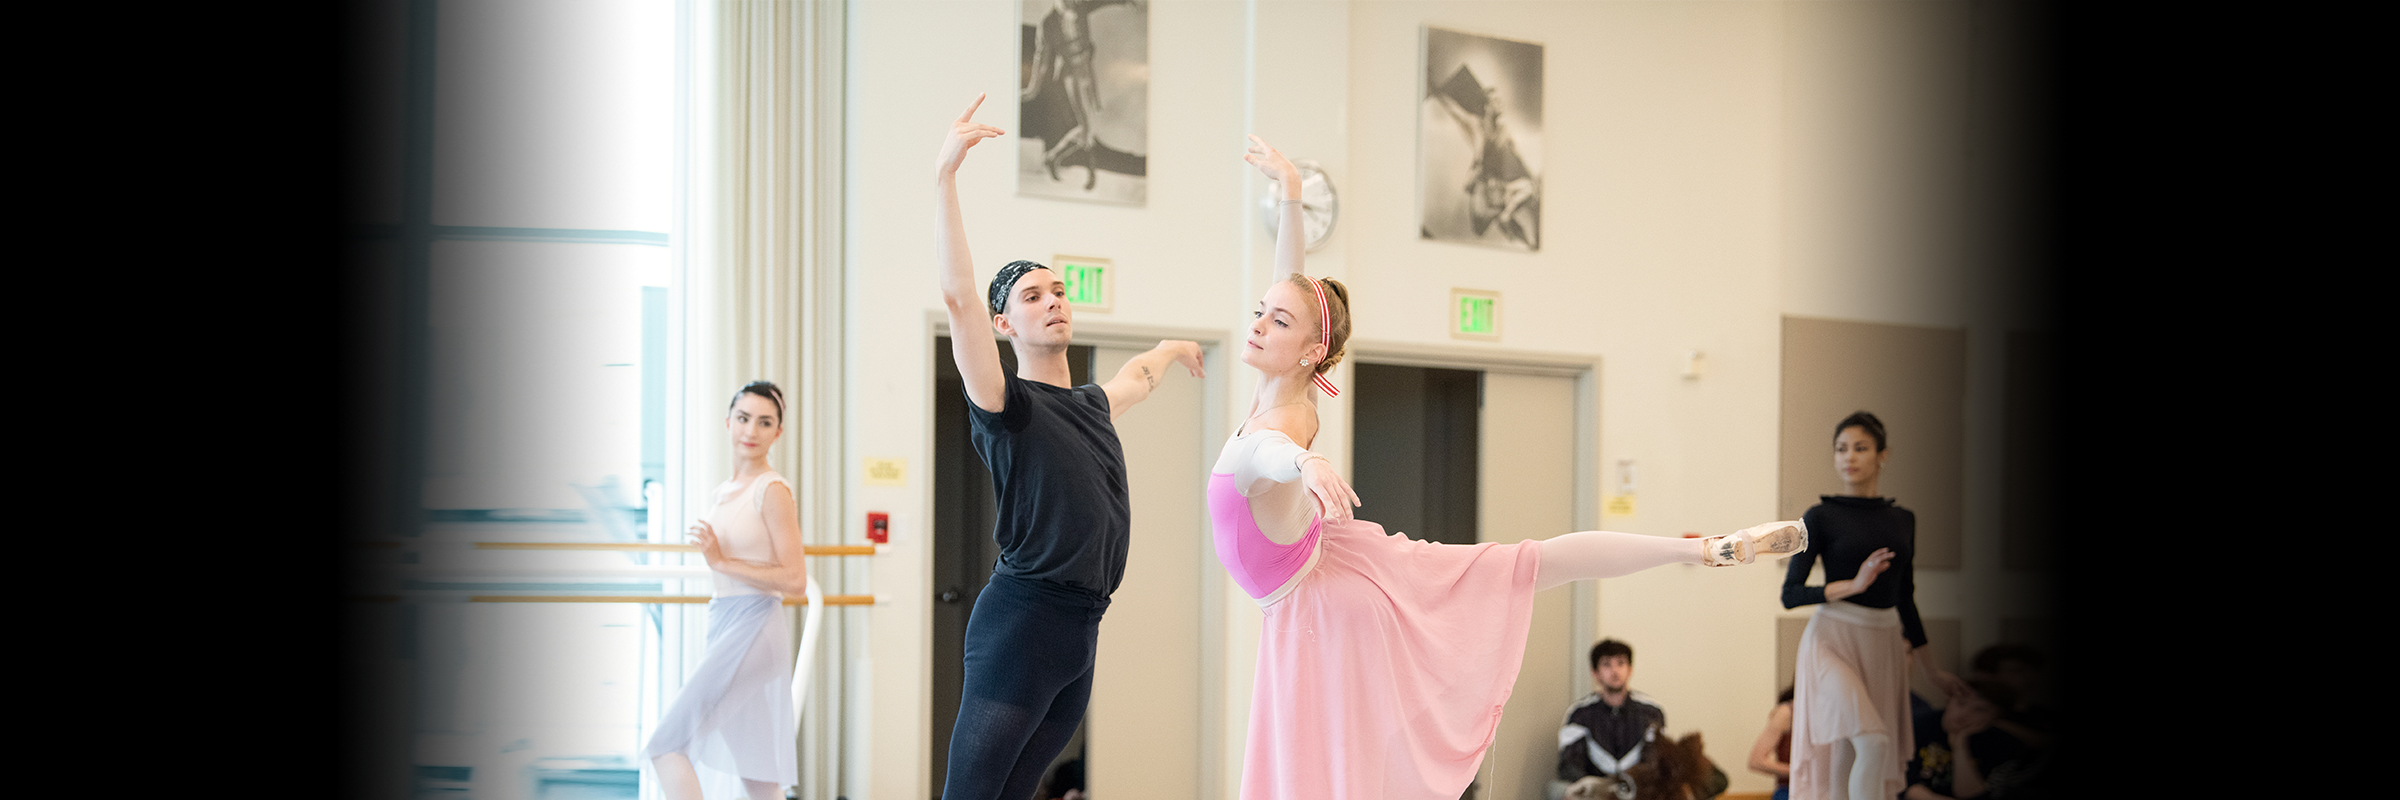 Two dancers in A Midsummer Night's Dream rehearsal.